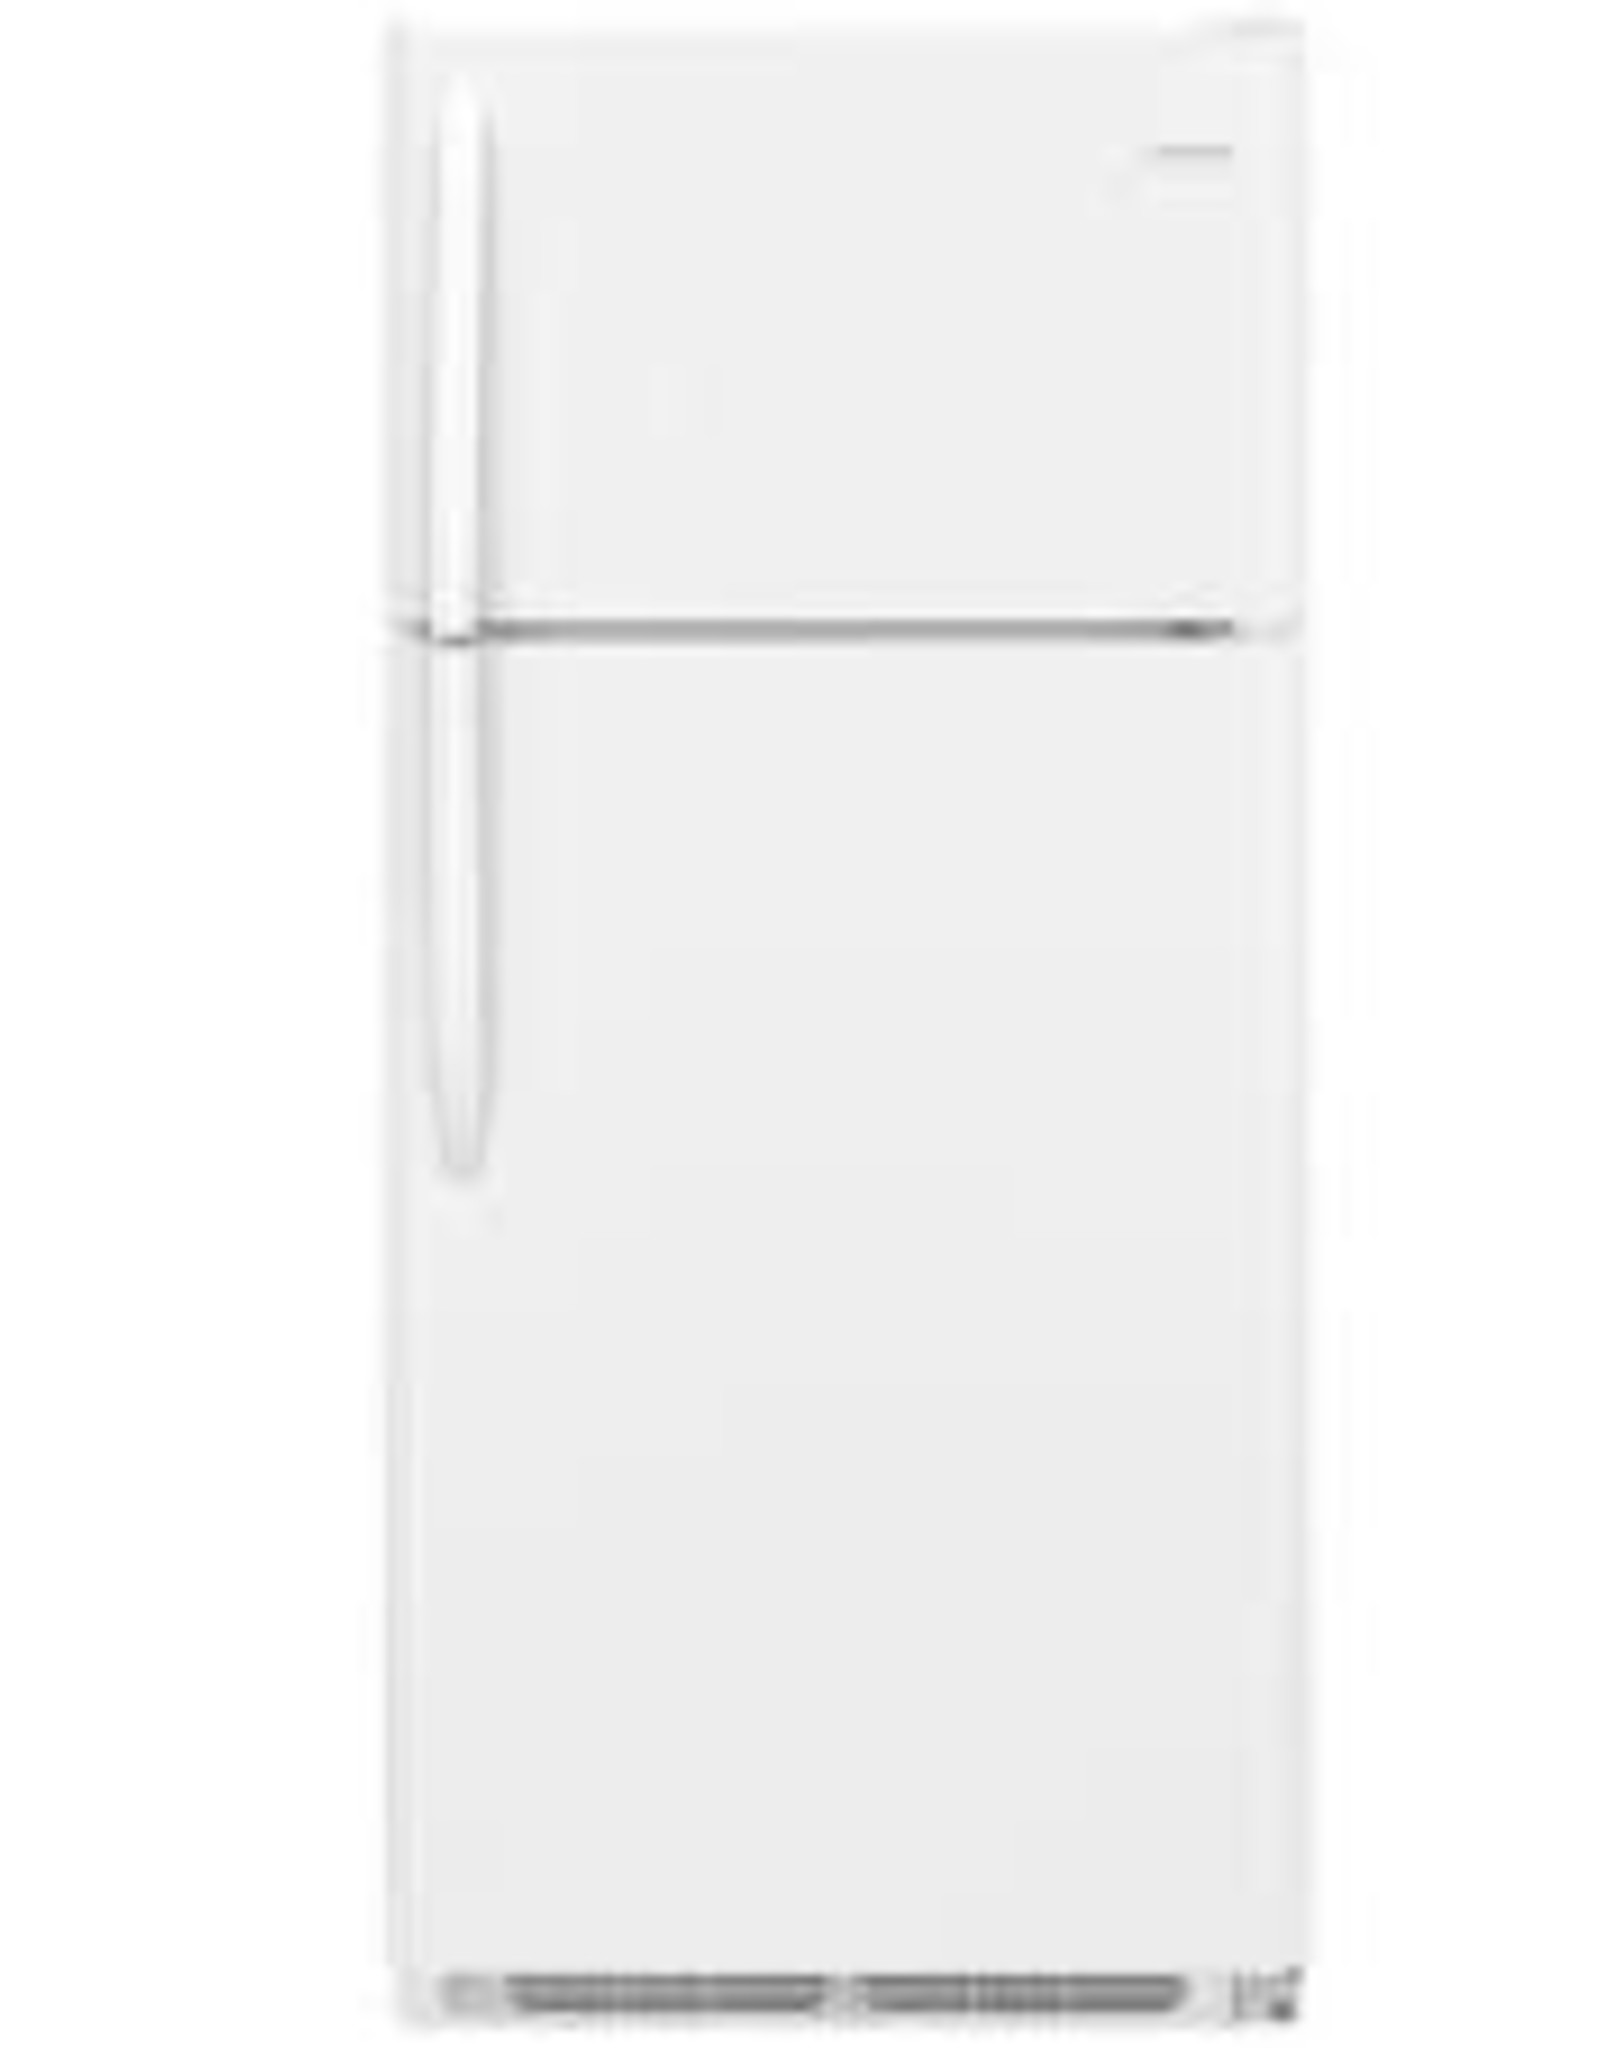 CLS 18CFT Crosley Refrigerator White